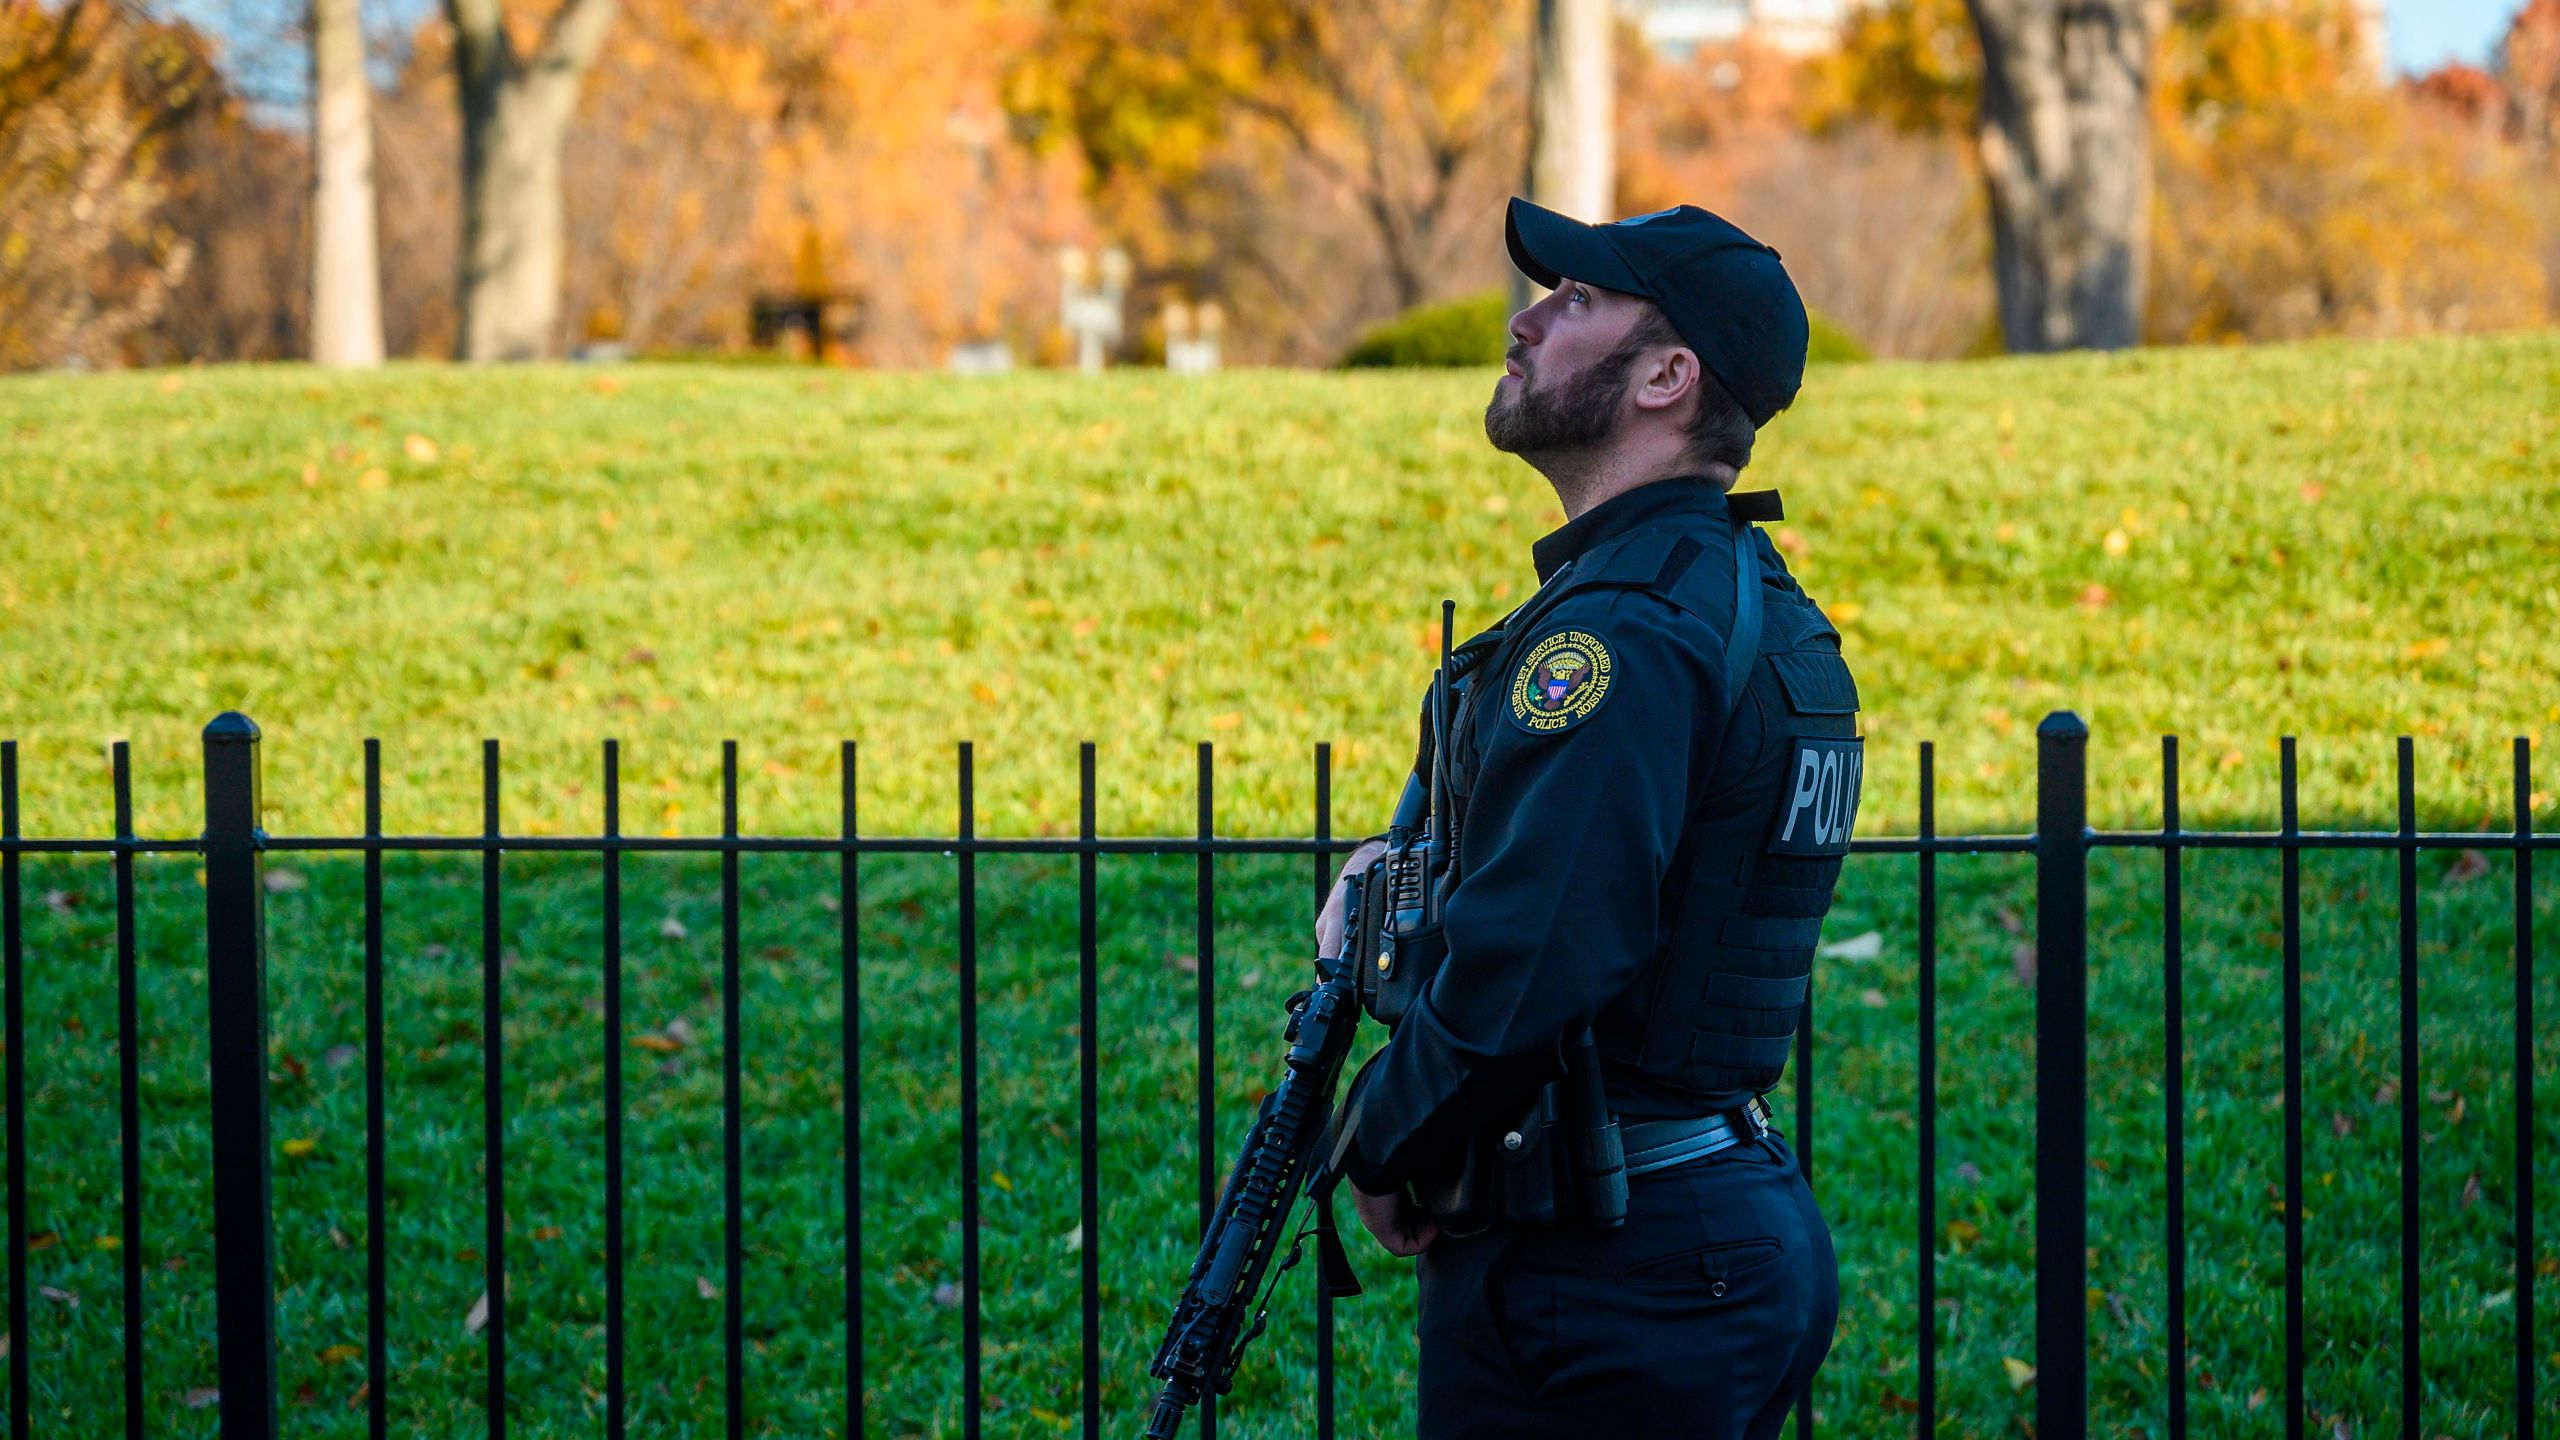 A Secret Service officer patrols the grounds at the White House in Washington, D.C., on Nov. 26, 2019, during an air space violation. (Credit: JIM WATSON/AFP via Getty Images)